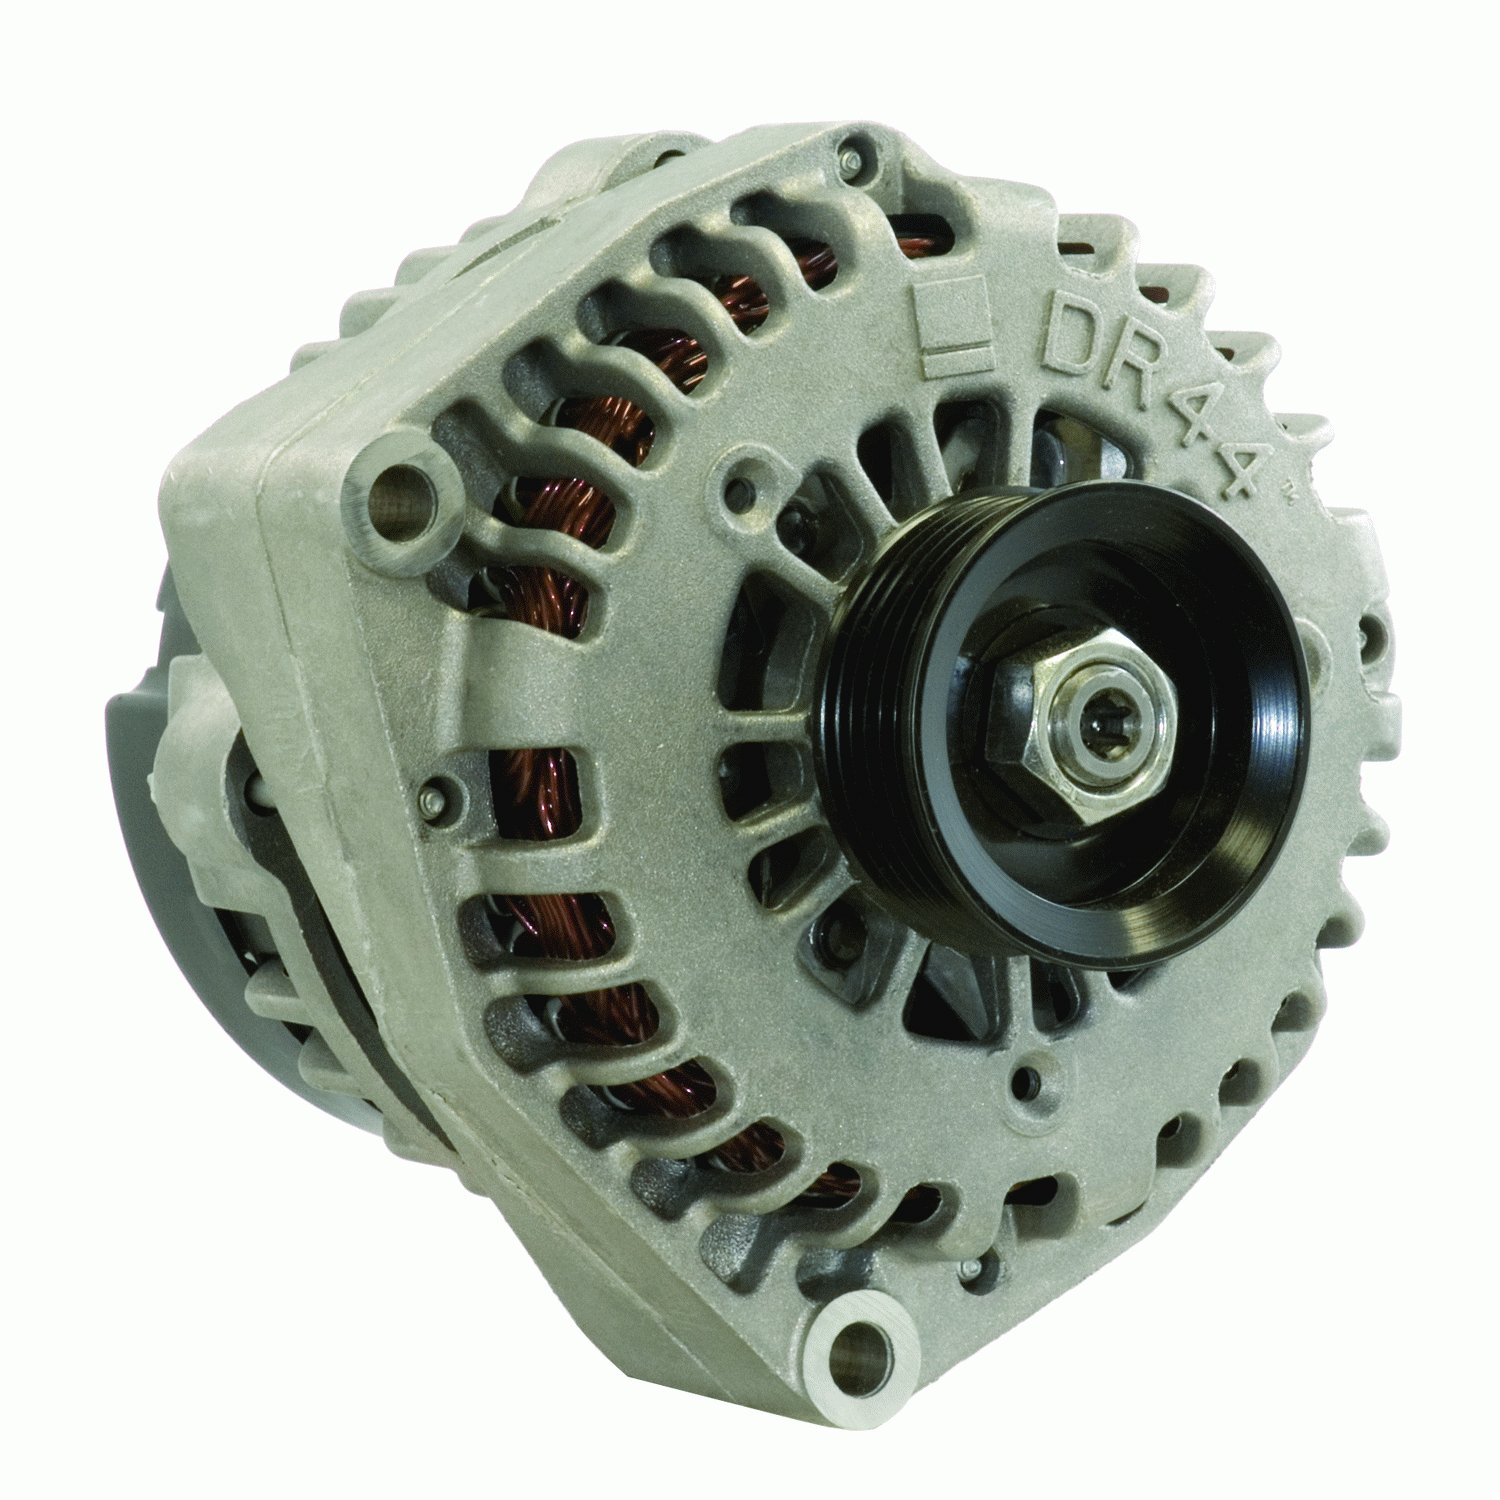 ACDelco 335-1196 Professional Alternator 335-1196-ACD